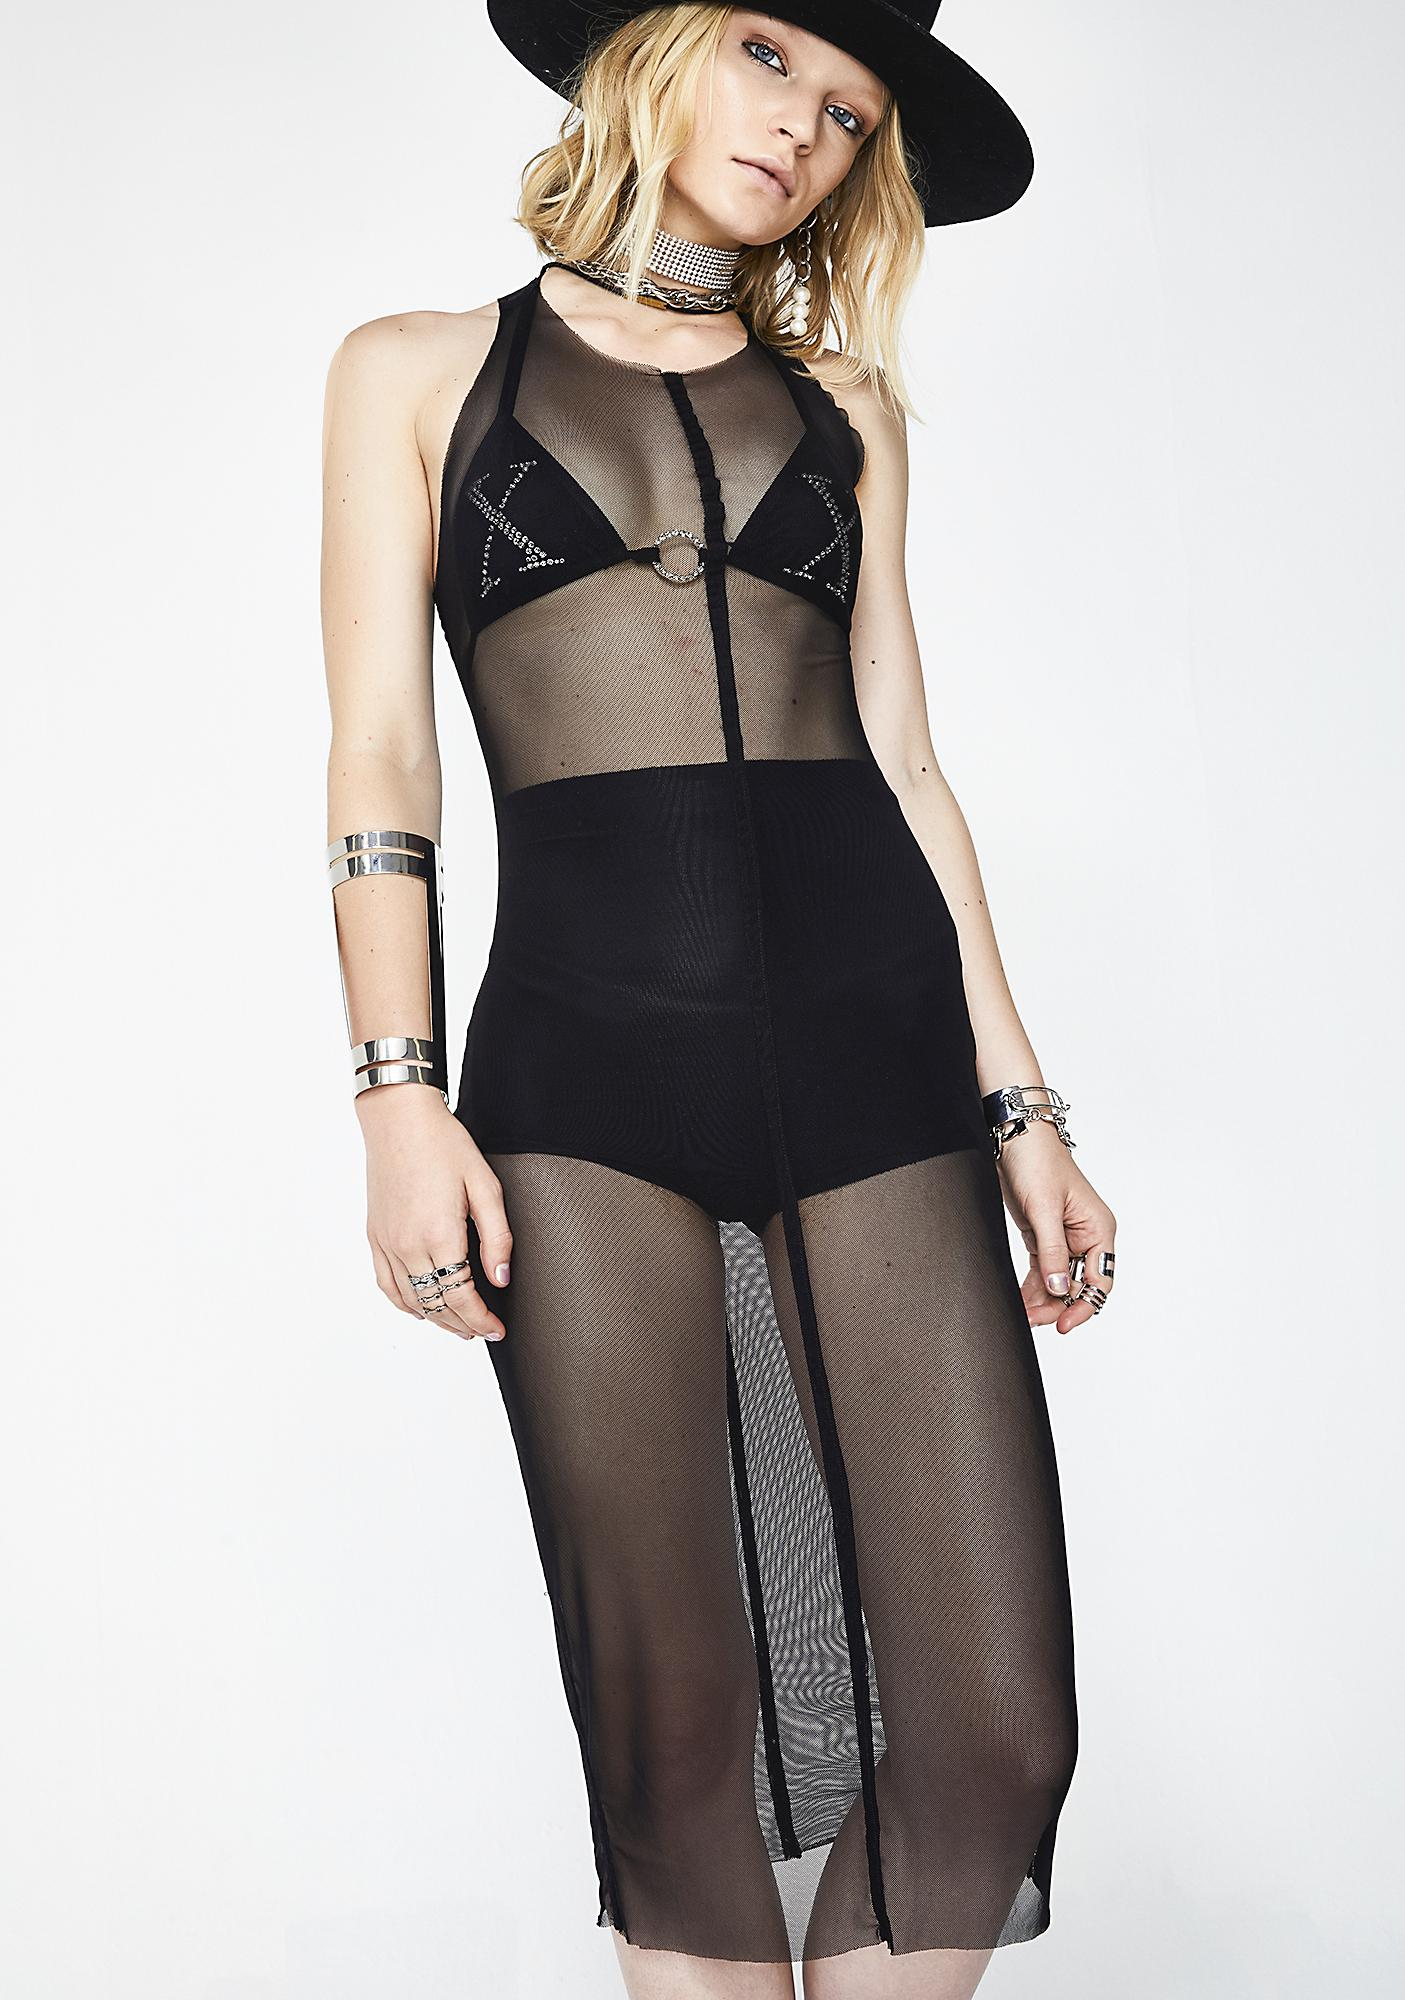 Comin' Out Sheer Dress